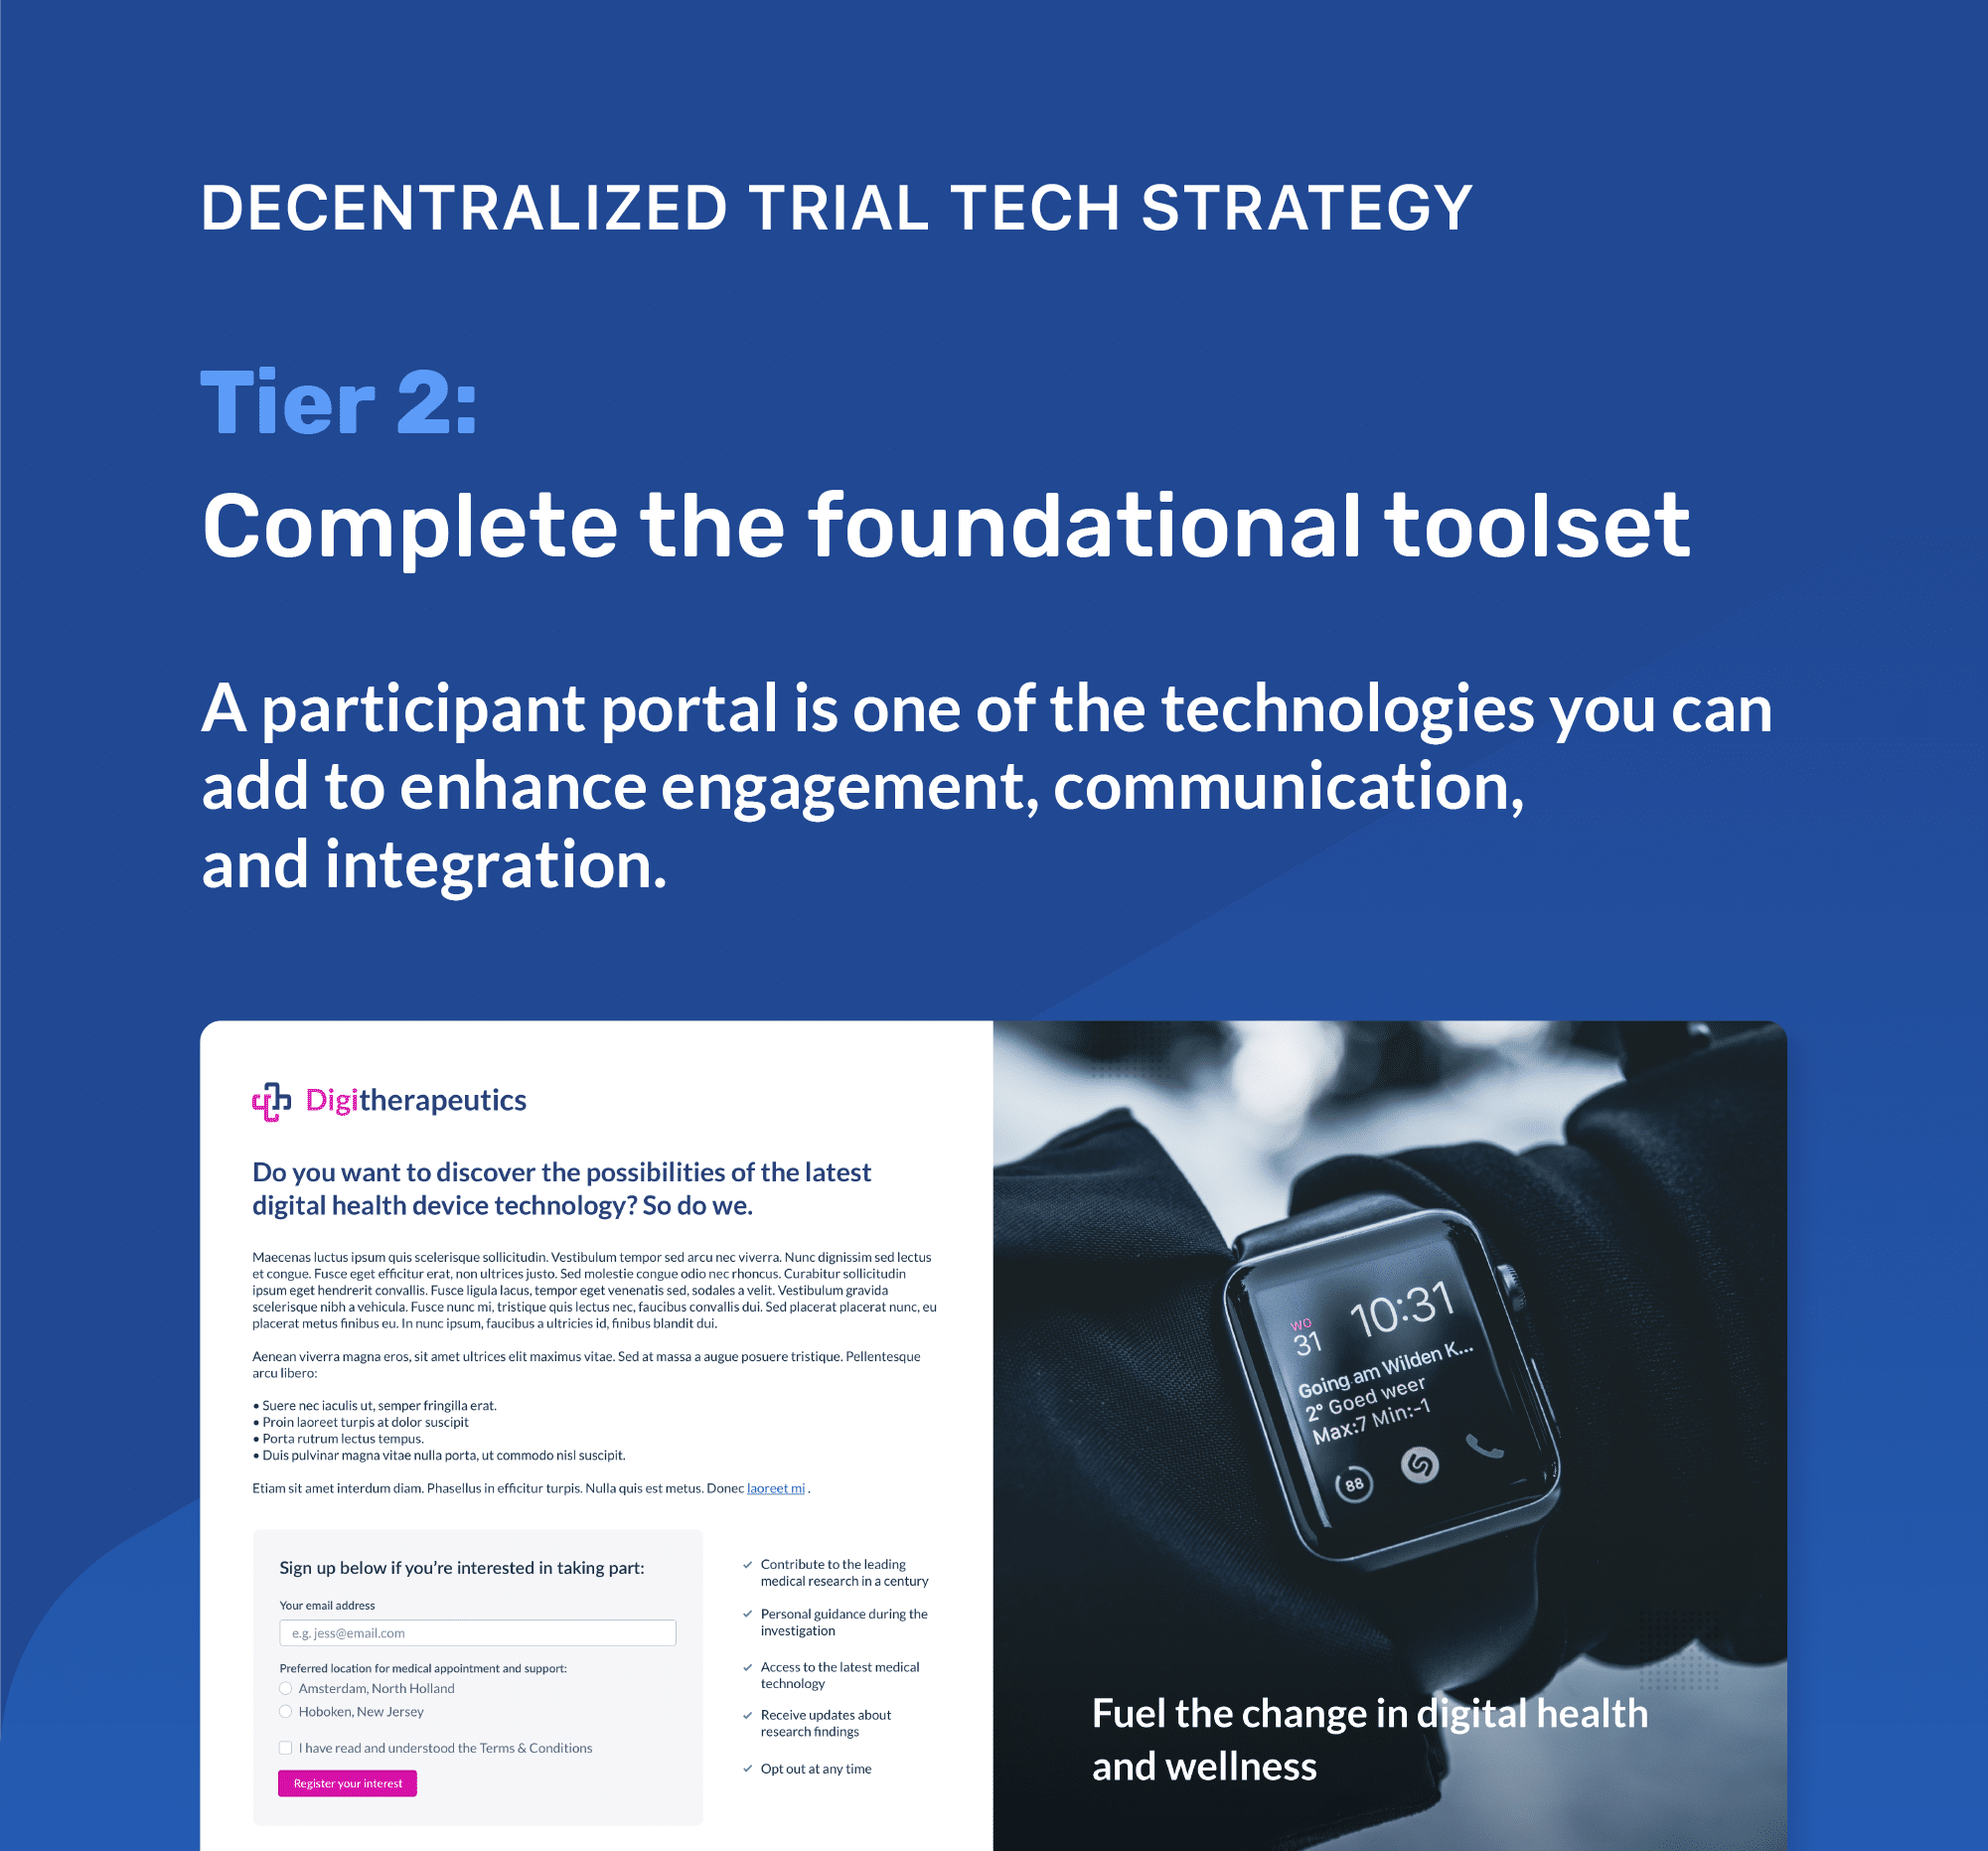 Tier 2 Clinical Trial tech strategy